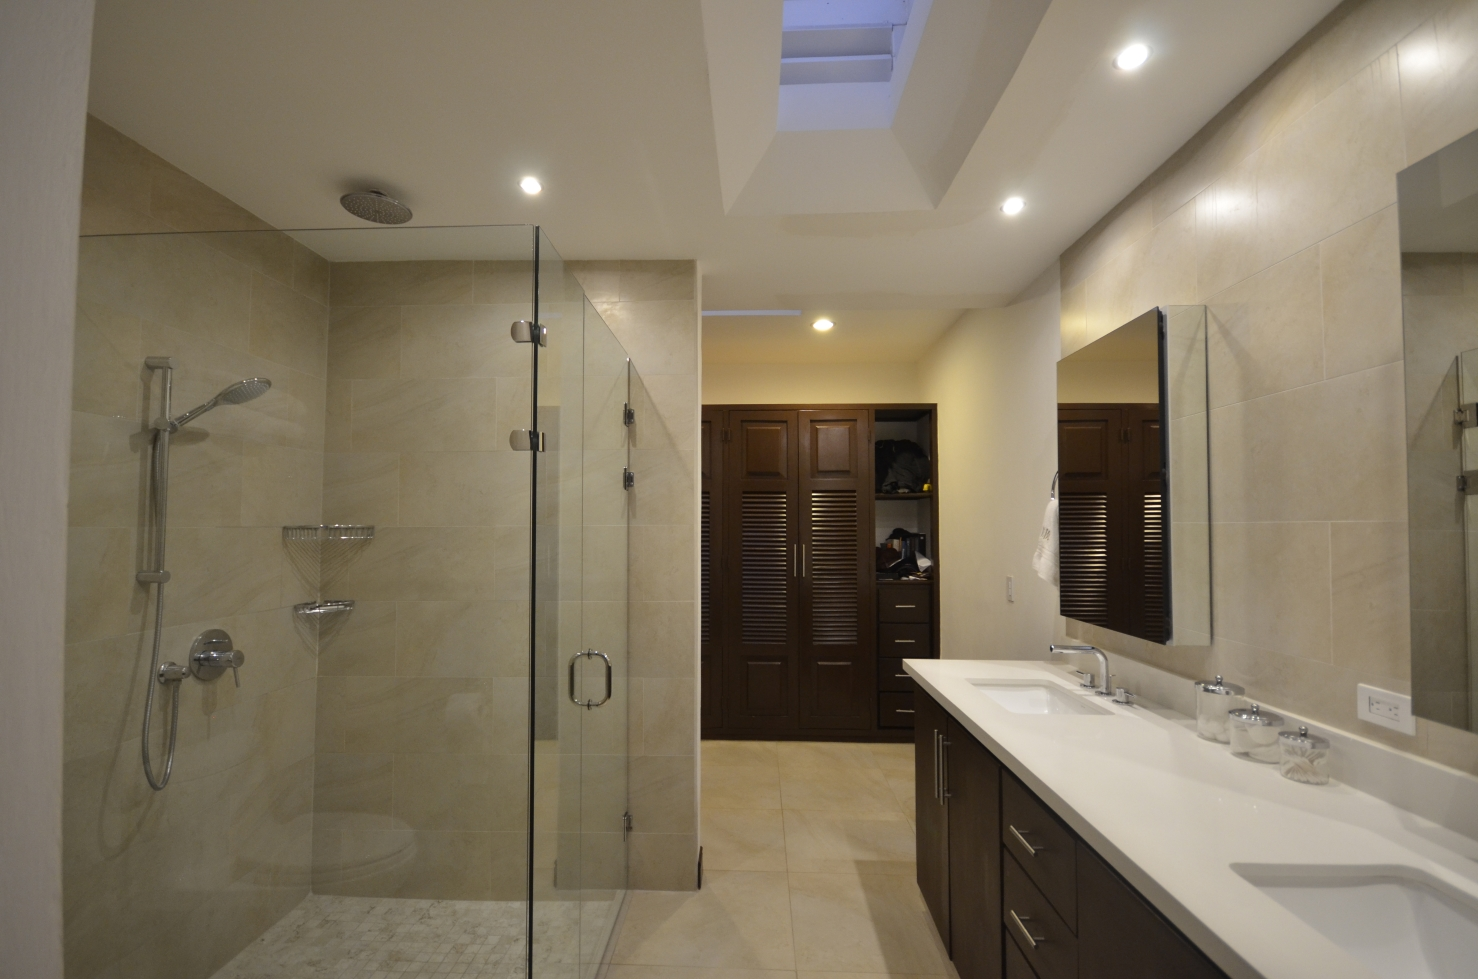 Bath room, interior design, architect design, Portal 45 Residence